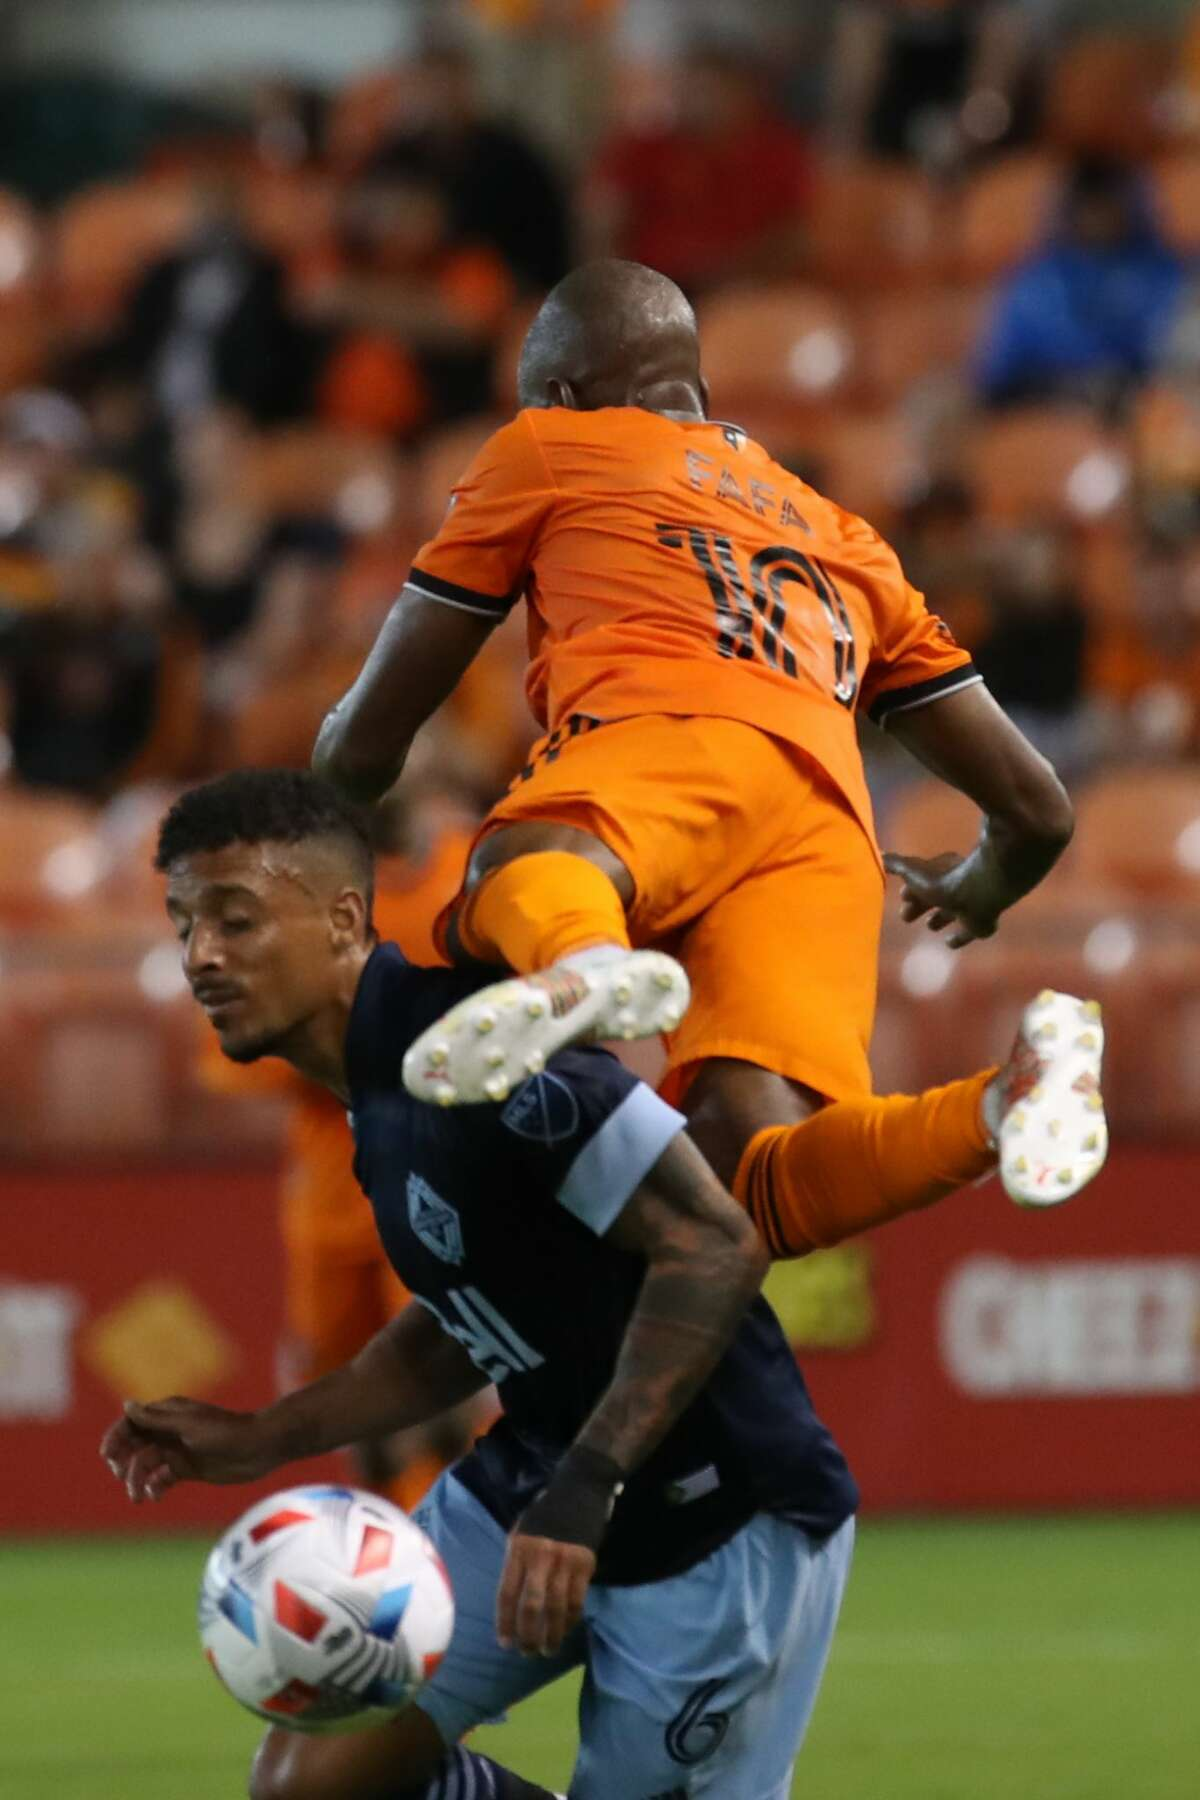 Houston Dynamo FC midfielder Fafa Picault (10) and Vancouver Whitecaps FC defender Bruno Gaspar (6) battle for control of the ball during the first half of an MLS match Saturday, May 22, 2021, at BBVA Stadium in Houston.